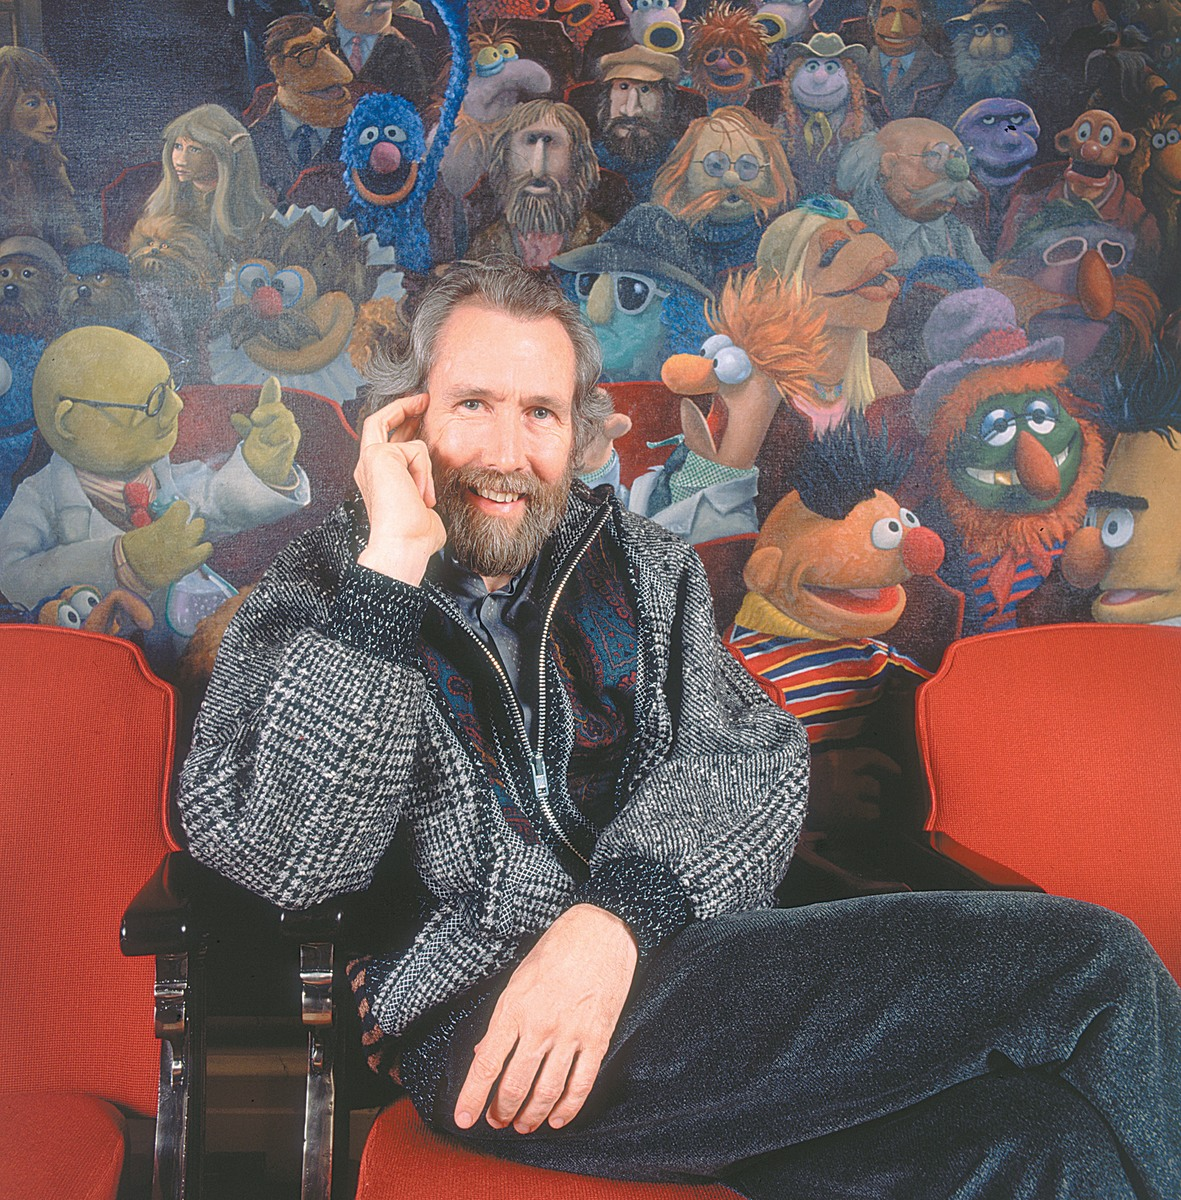 free things to do with kids in nyc jim henson exhibition museum of the moving image